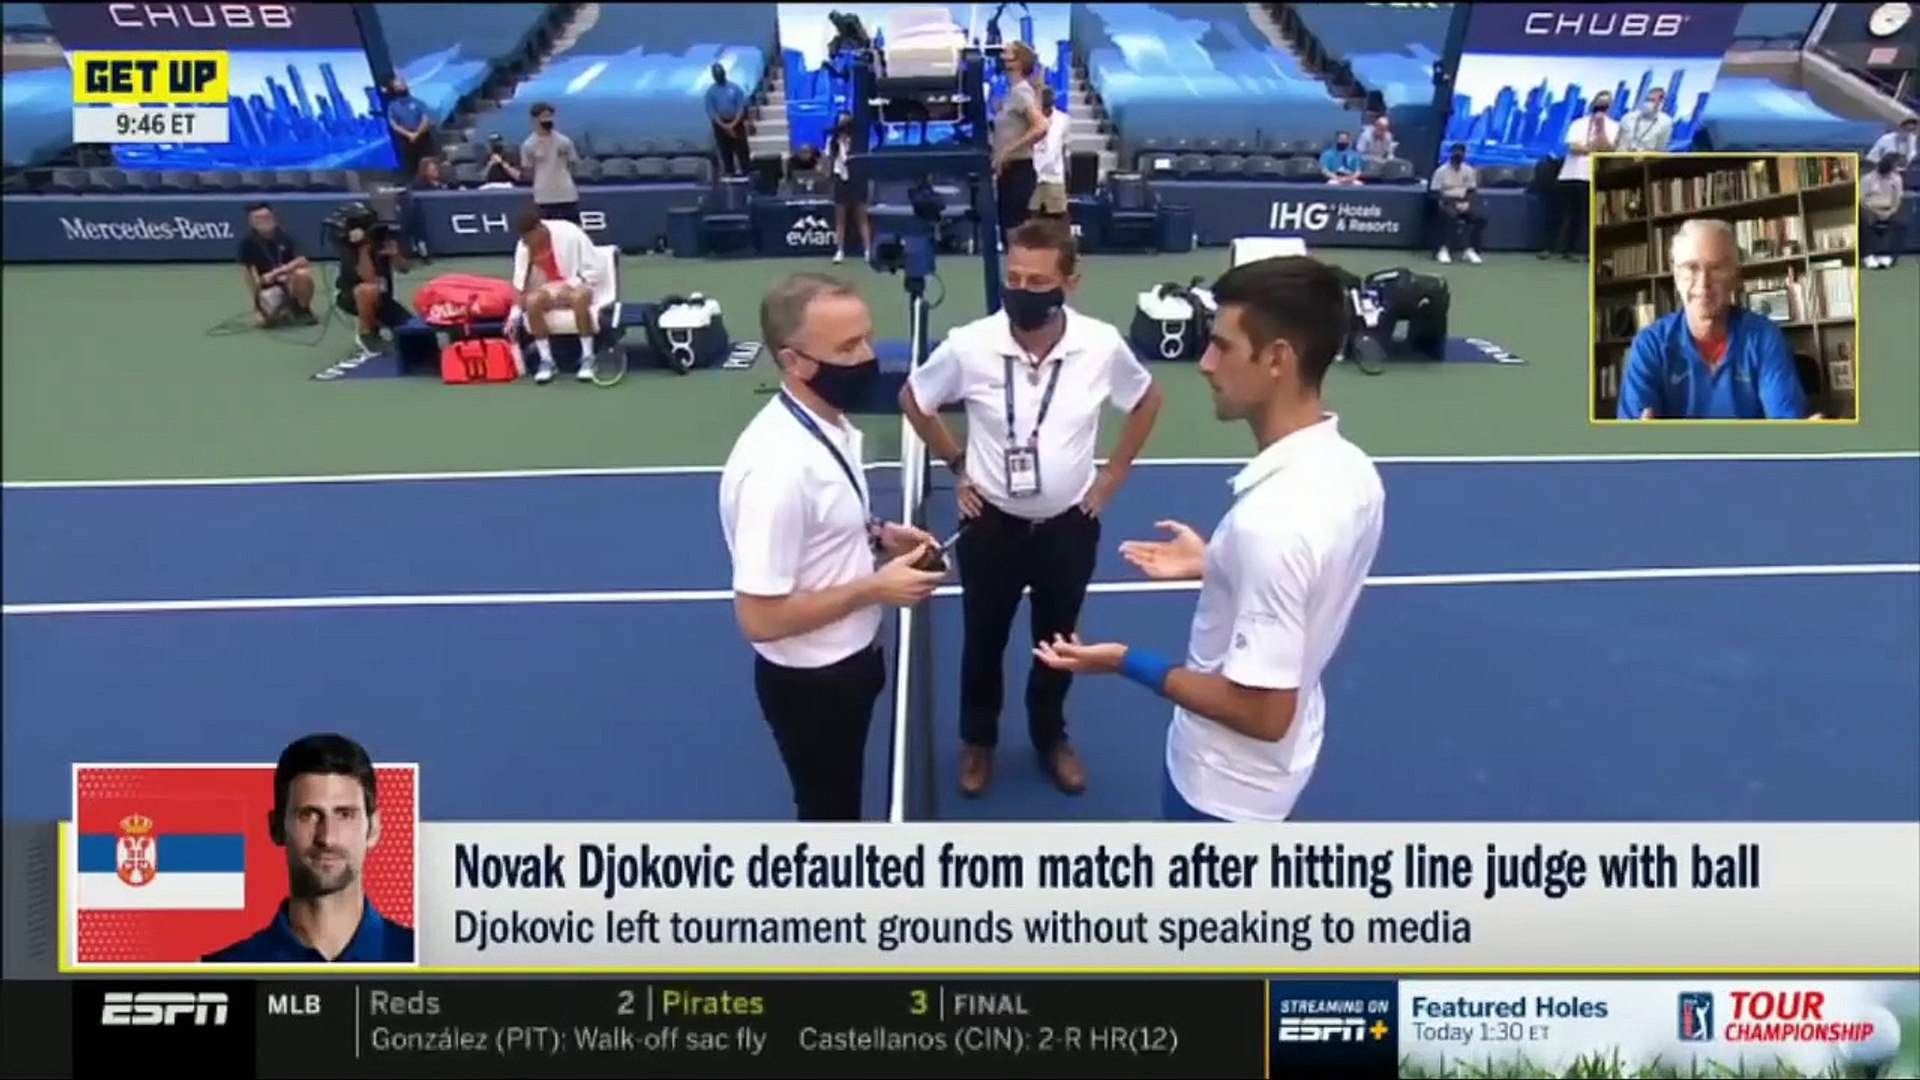 John Mcenroe Shocked By Novak Djokovic Defaulted From Match After Hitting Line Judge With Ball Video Dailymotion